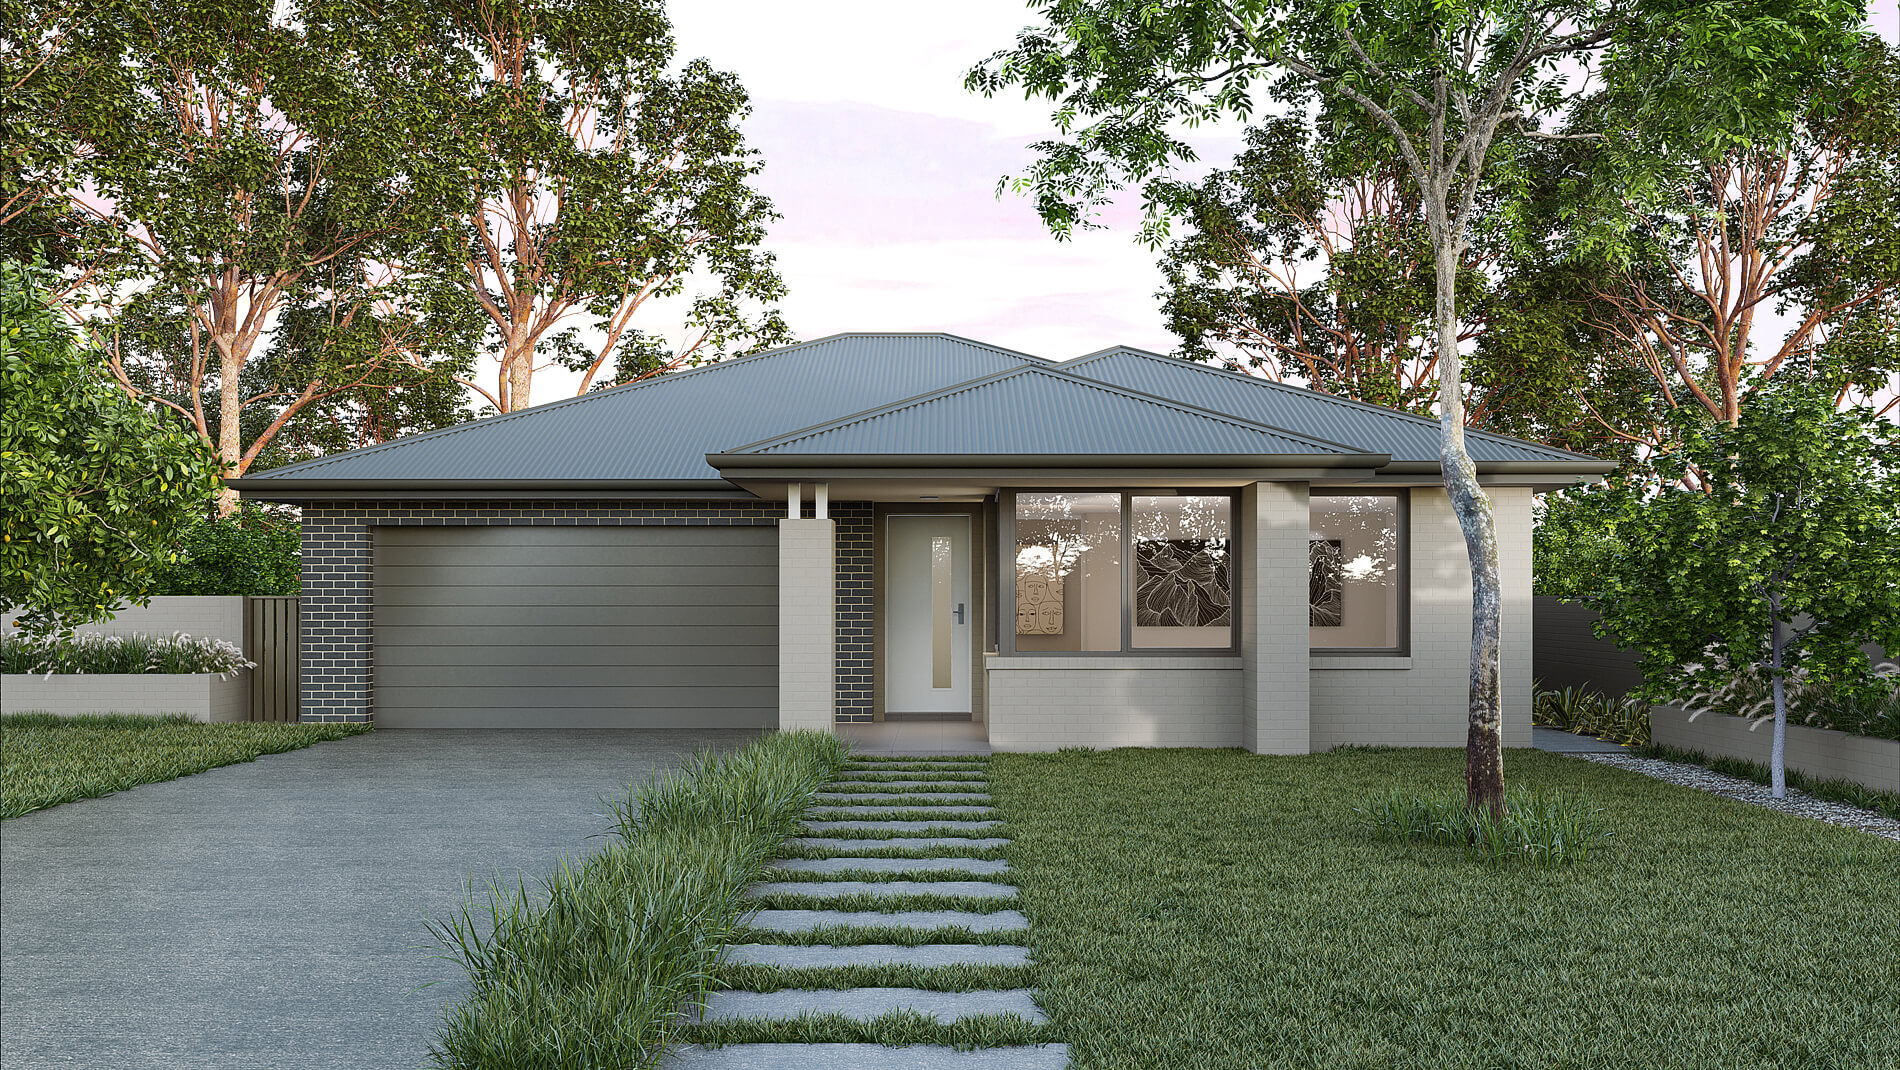 Versatile Homes Urban Style Façade from our Luxe Collection. This façade is clean and striking, placing it as a defining exclamation in any established neighbourhood or newly created estate.